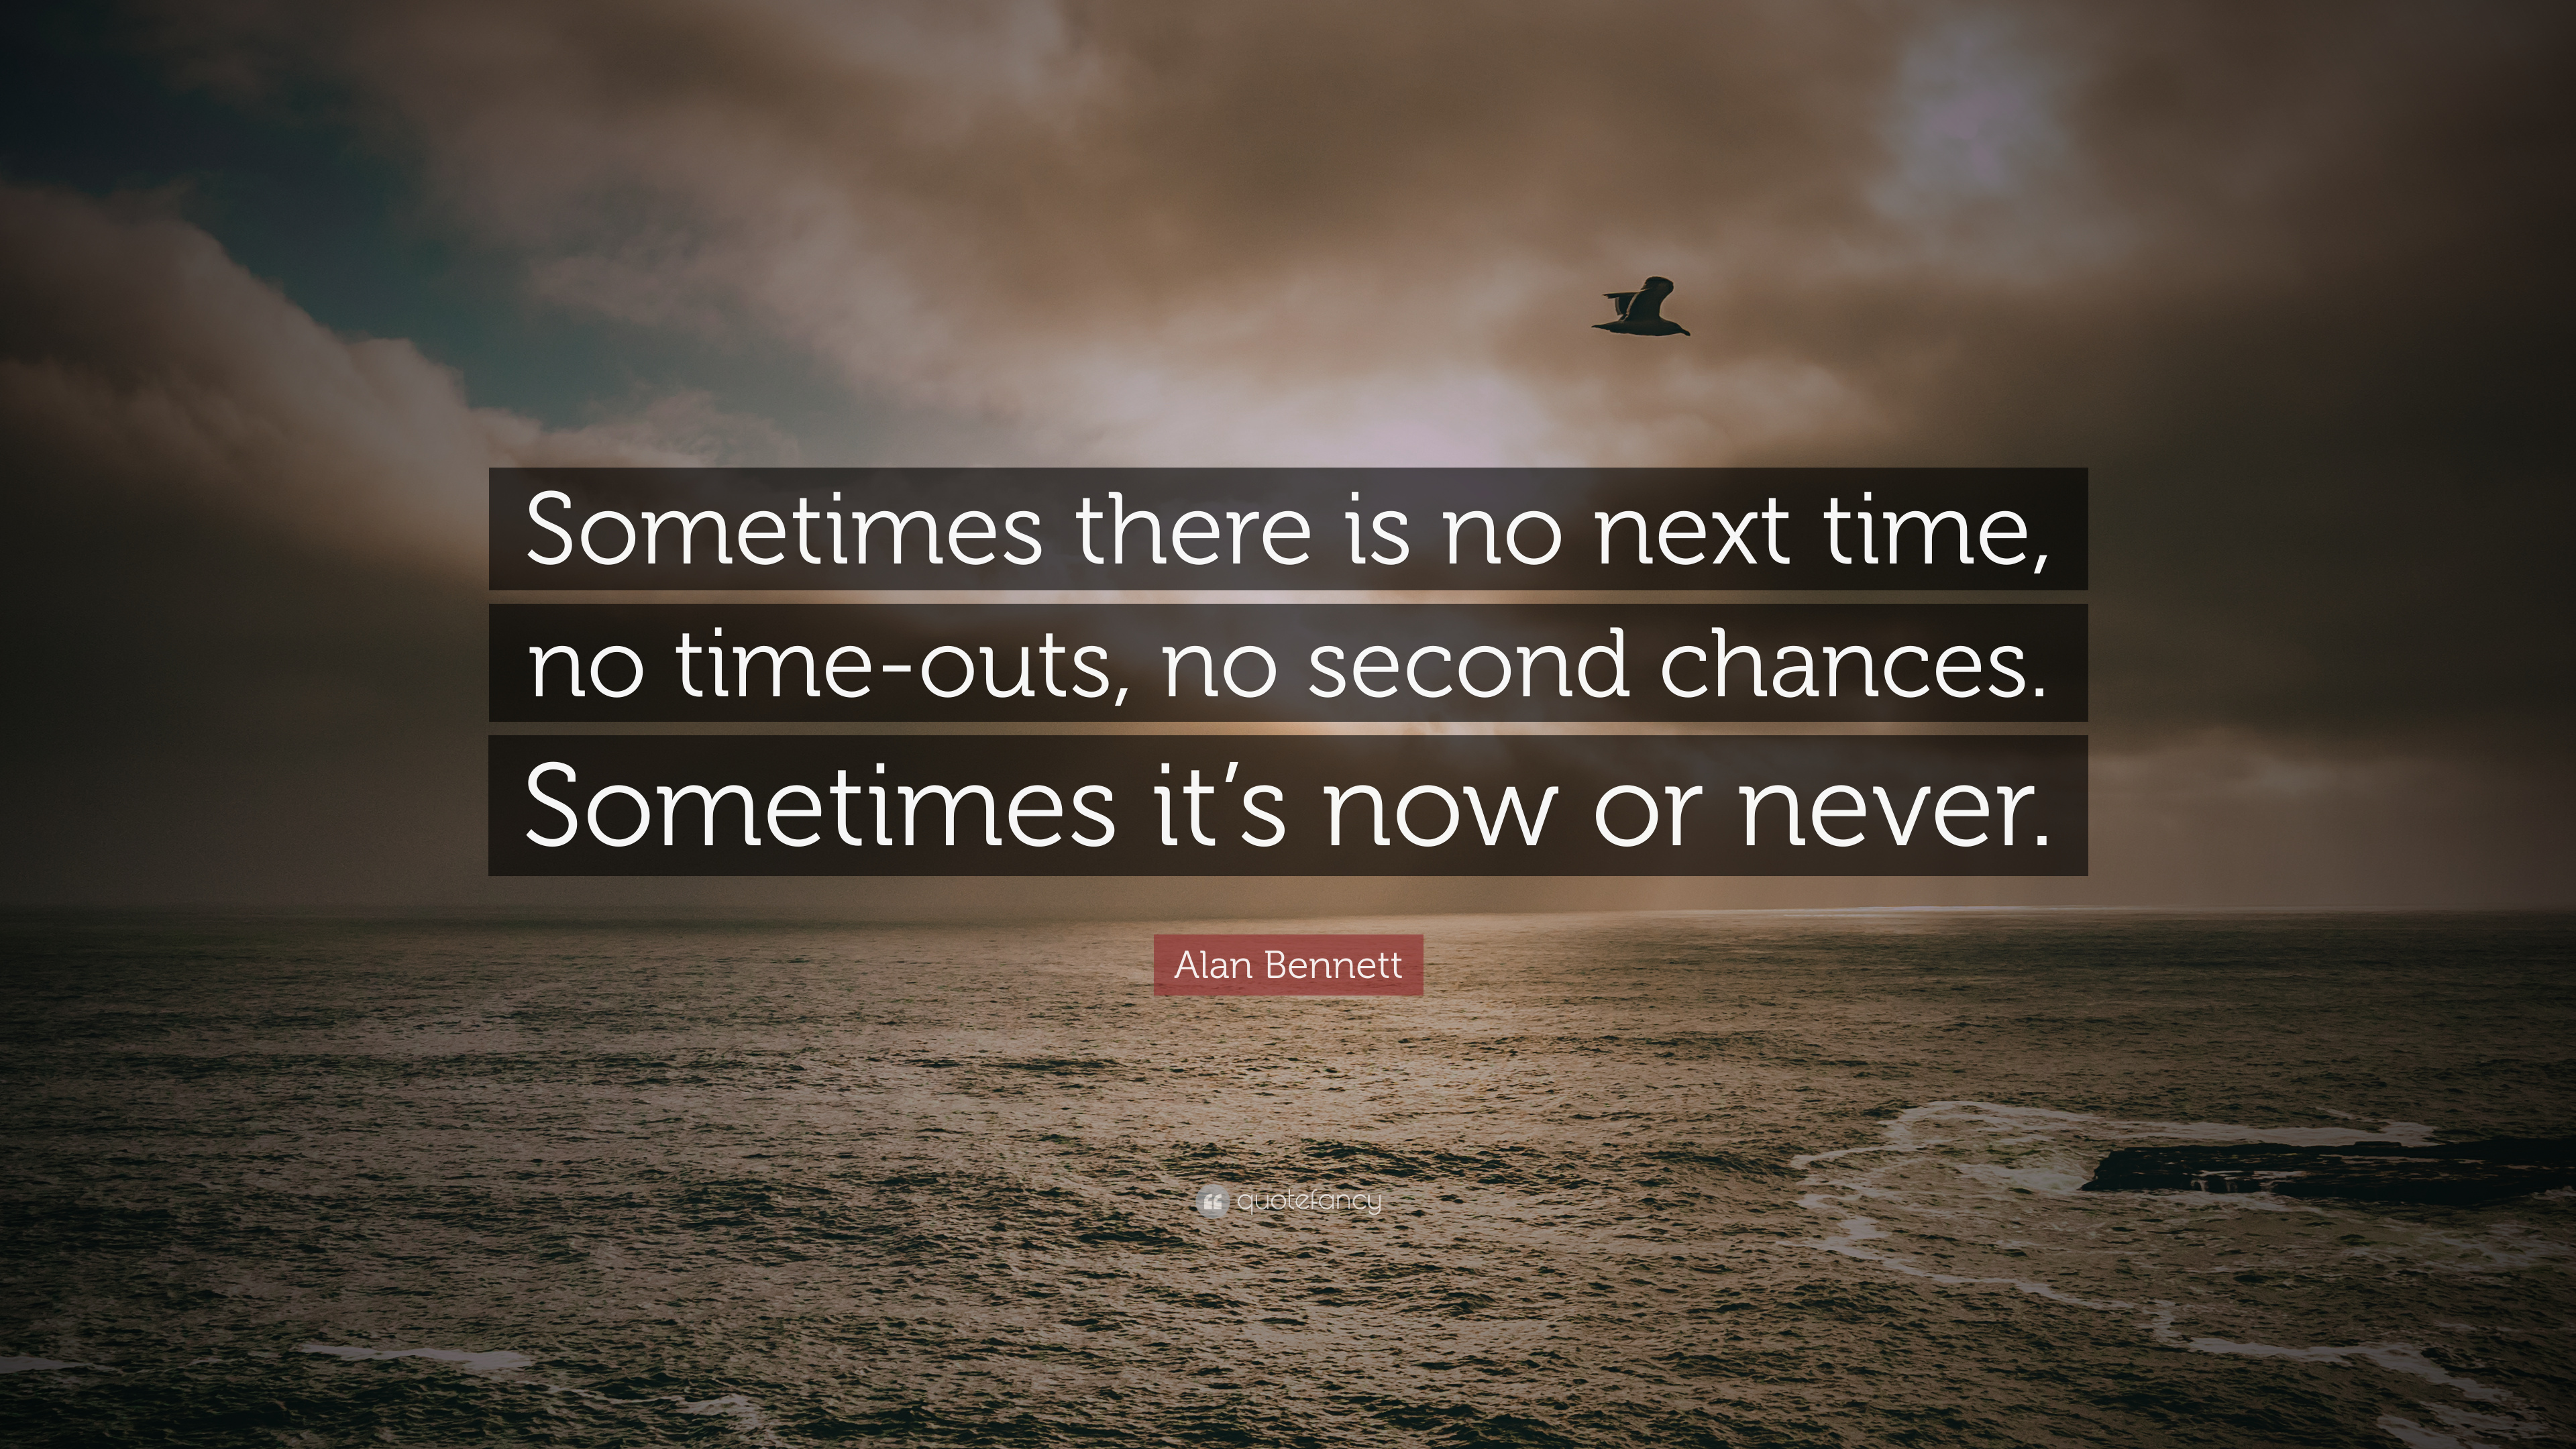 Alan Bennett Quote: Sometimes there is no next time, no